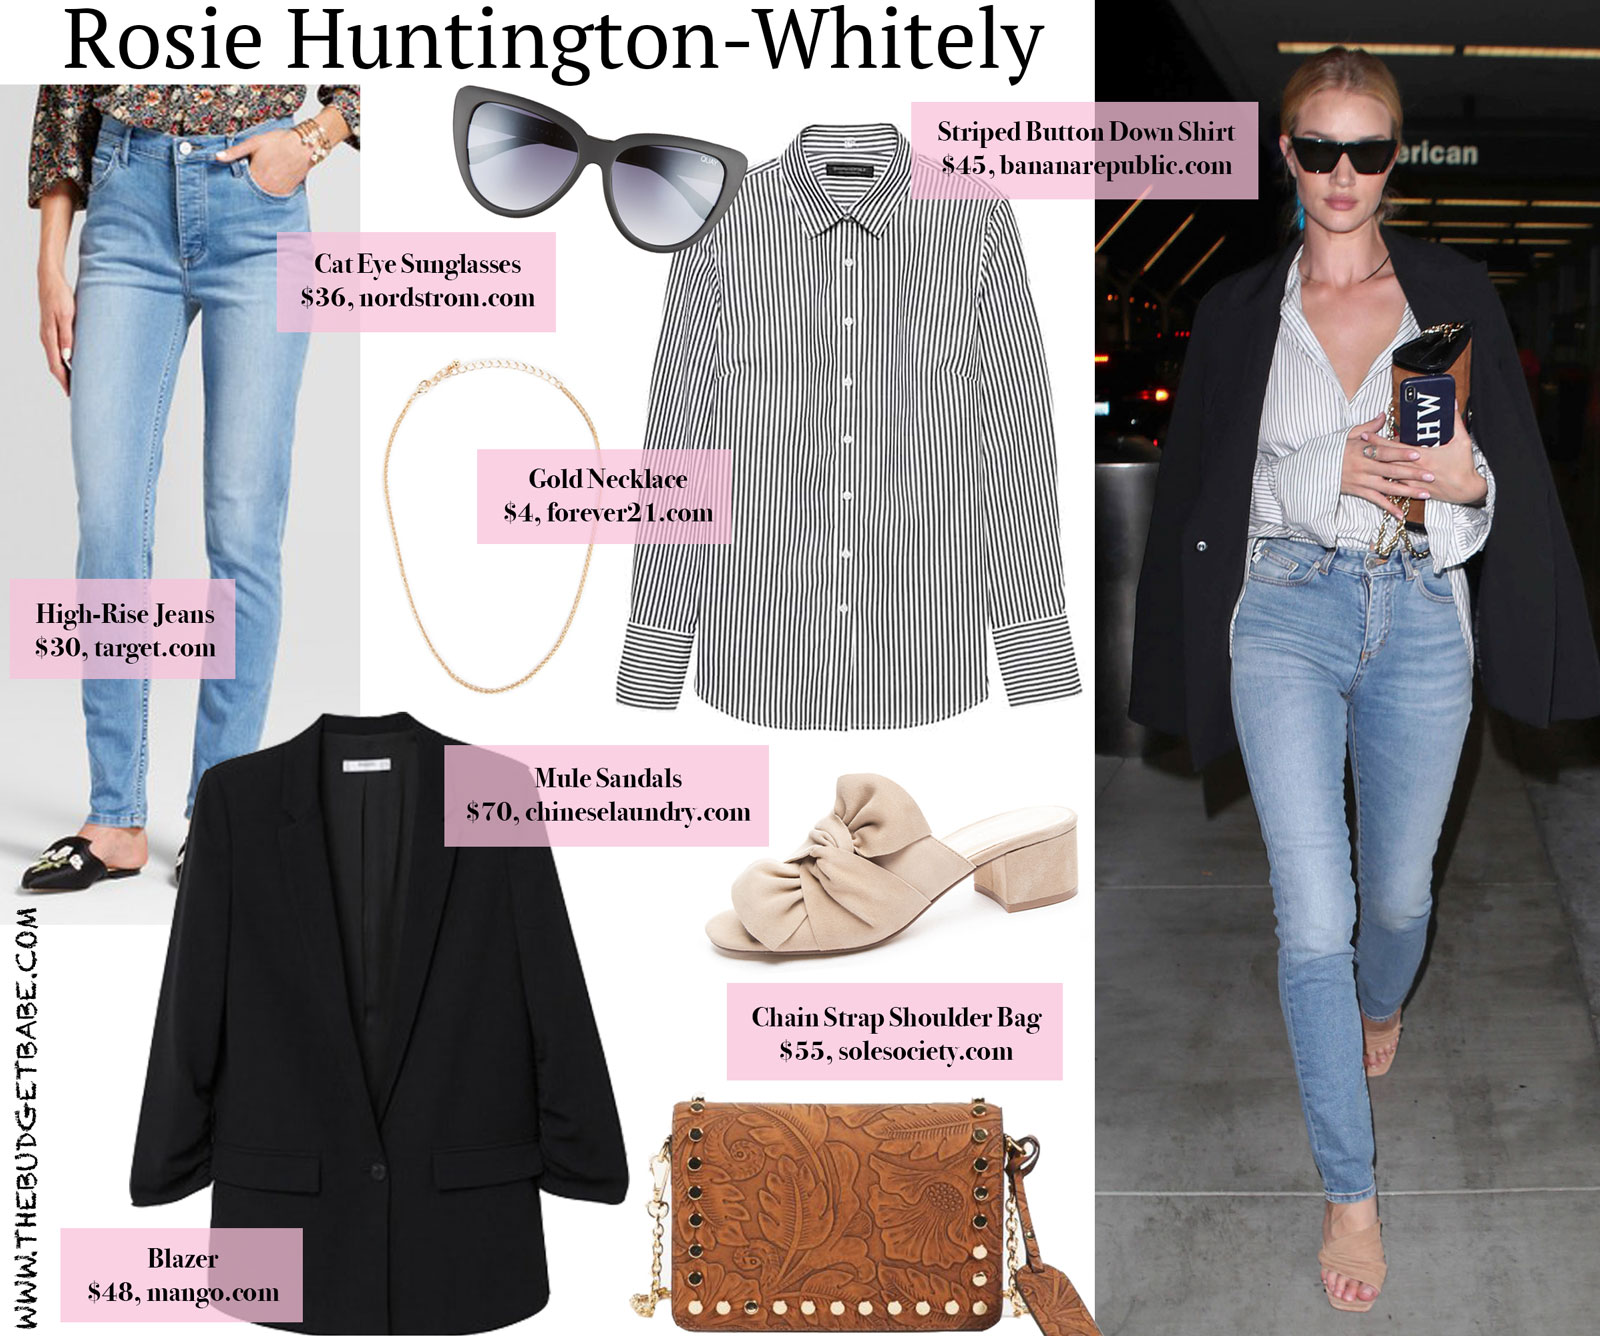 Rosie Huntington-Whitely Striped Button Down and Black Blazer Look for Less